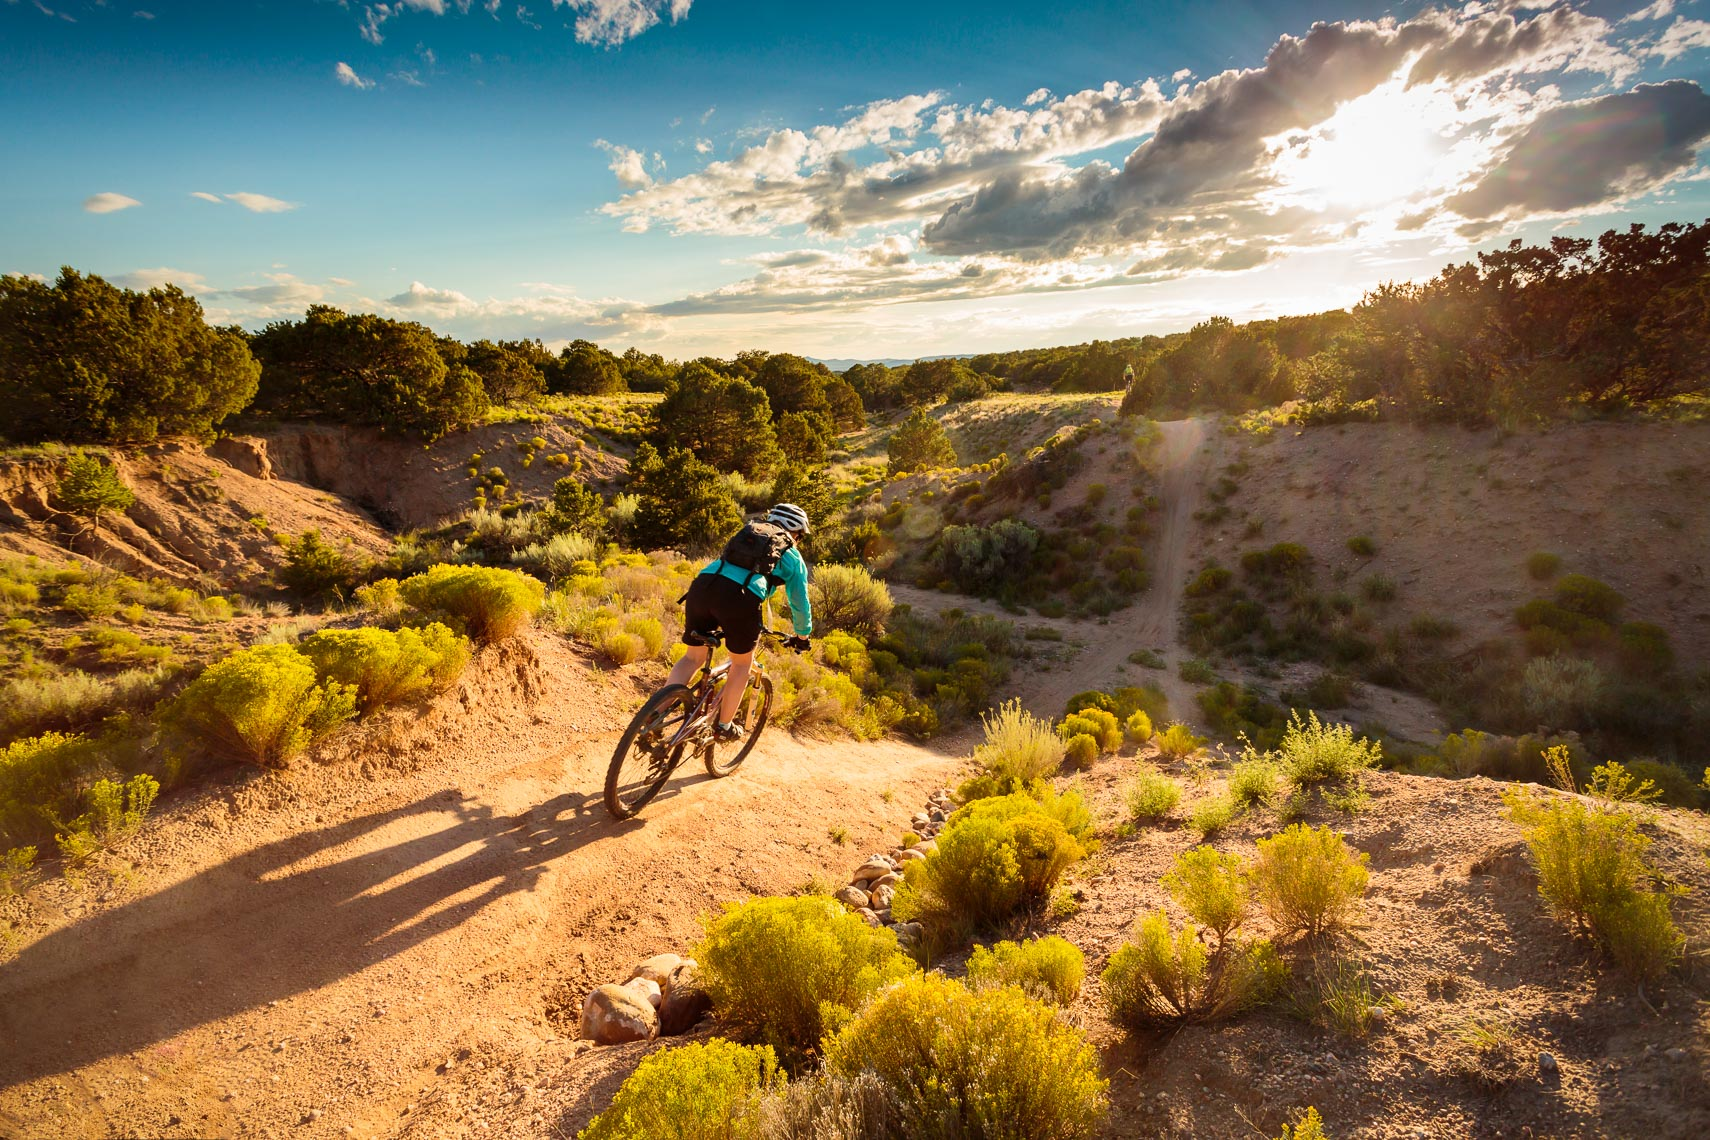 Mountain Bike Ride Santa Fe New Mexico | Michael DeYoung